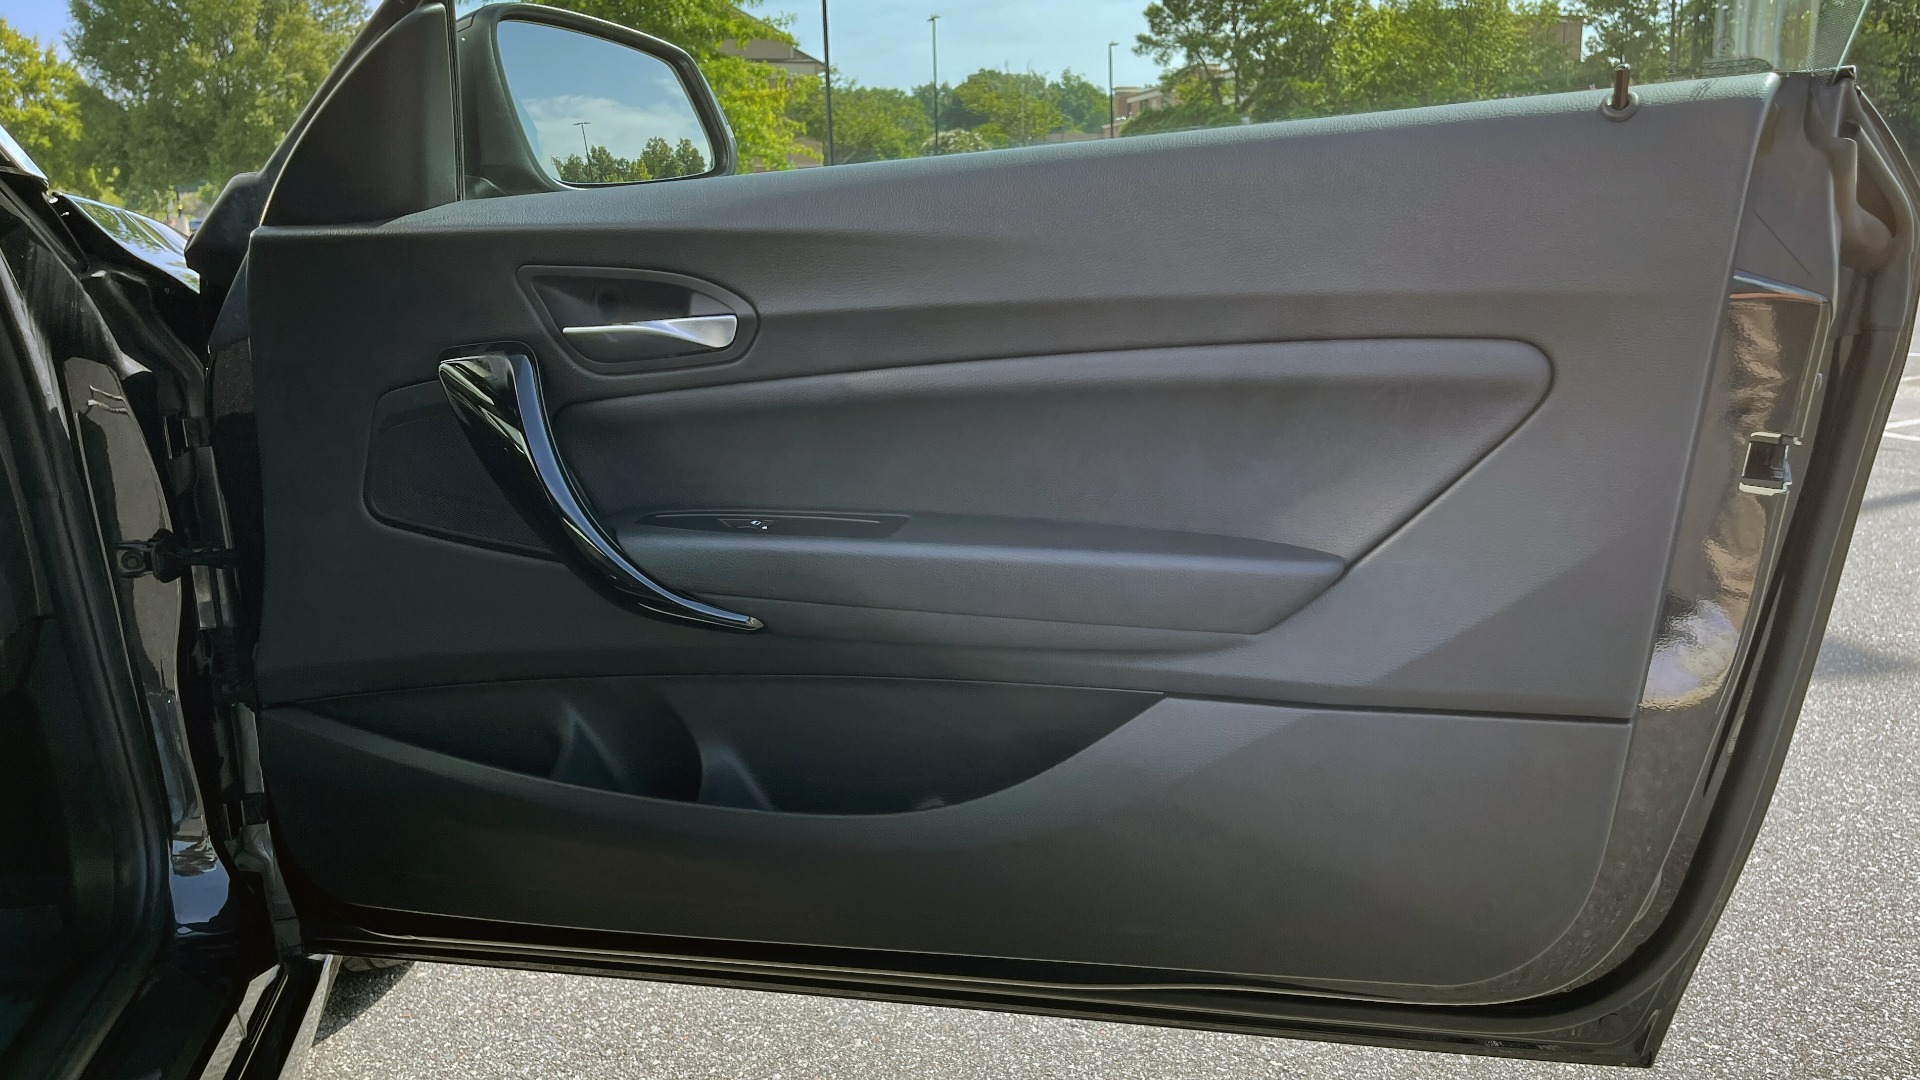 Used 2018 BMW 2 SERIES 230I XDRIVE PREMIUM / CONV PKG / NAV / SUNROOF / REARVIEW for sale $30,795 at Formula Imports in Charlotte NC 28227 47